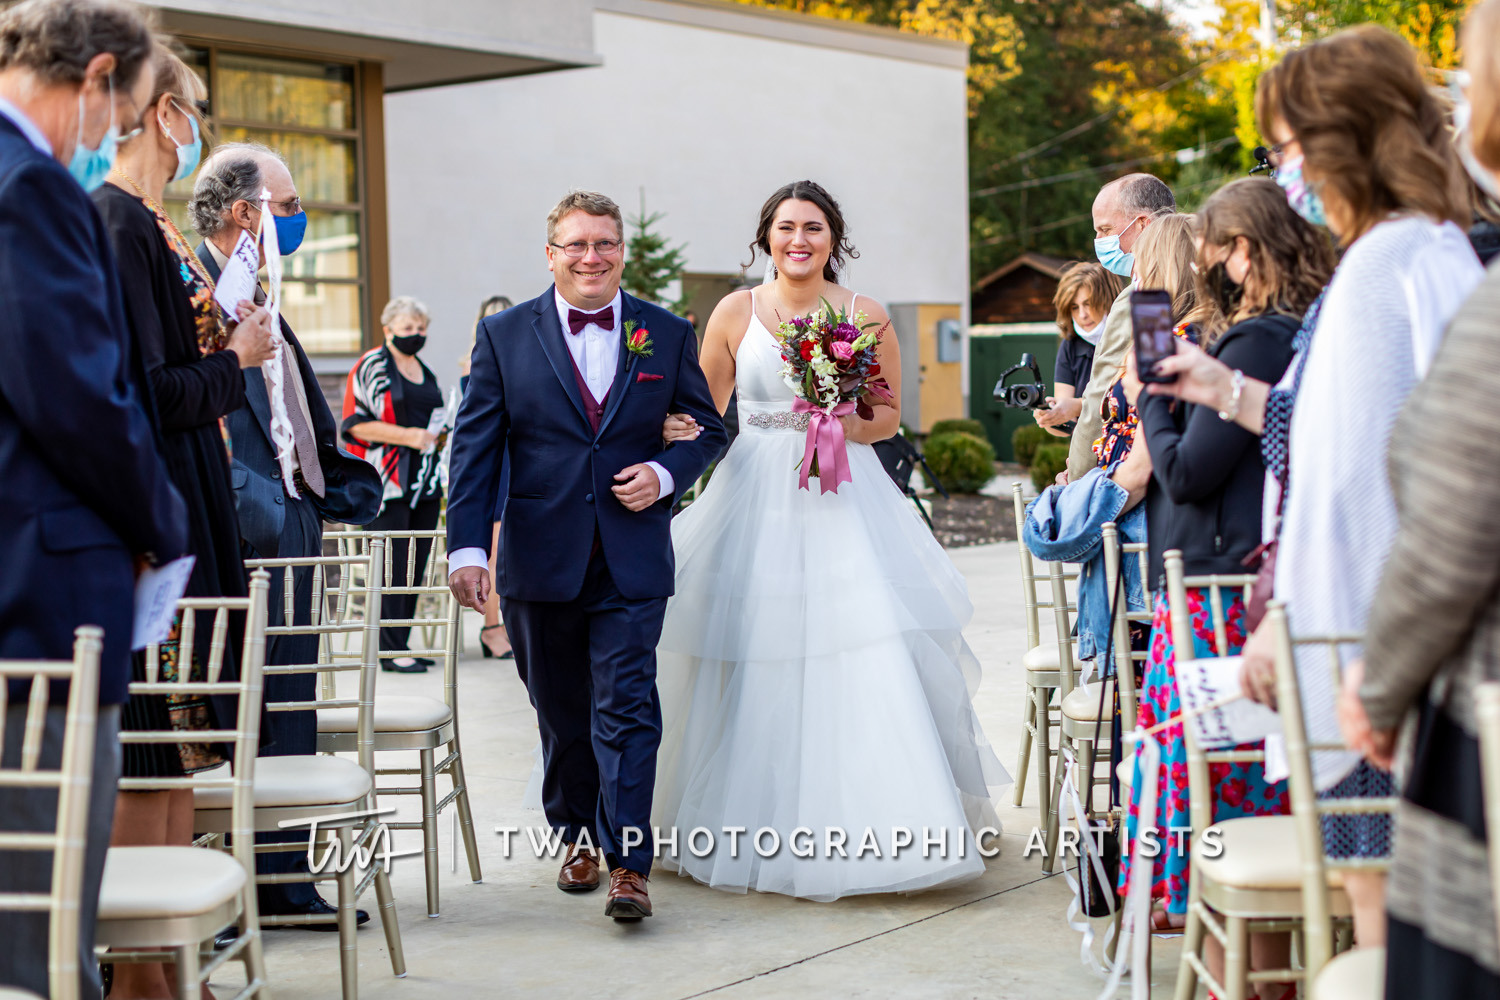 Chicago-Wedding-Photographer-TWA-Photographic-Artists-Avante-Banquets_Zickert_Quaas_MD_SG-0556